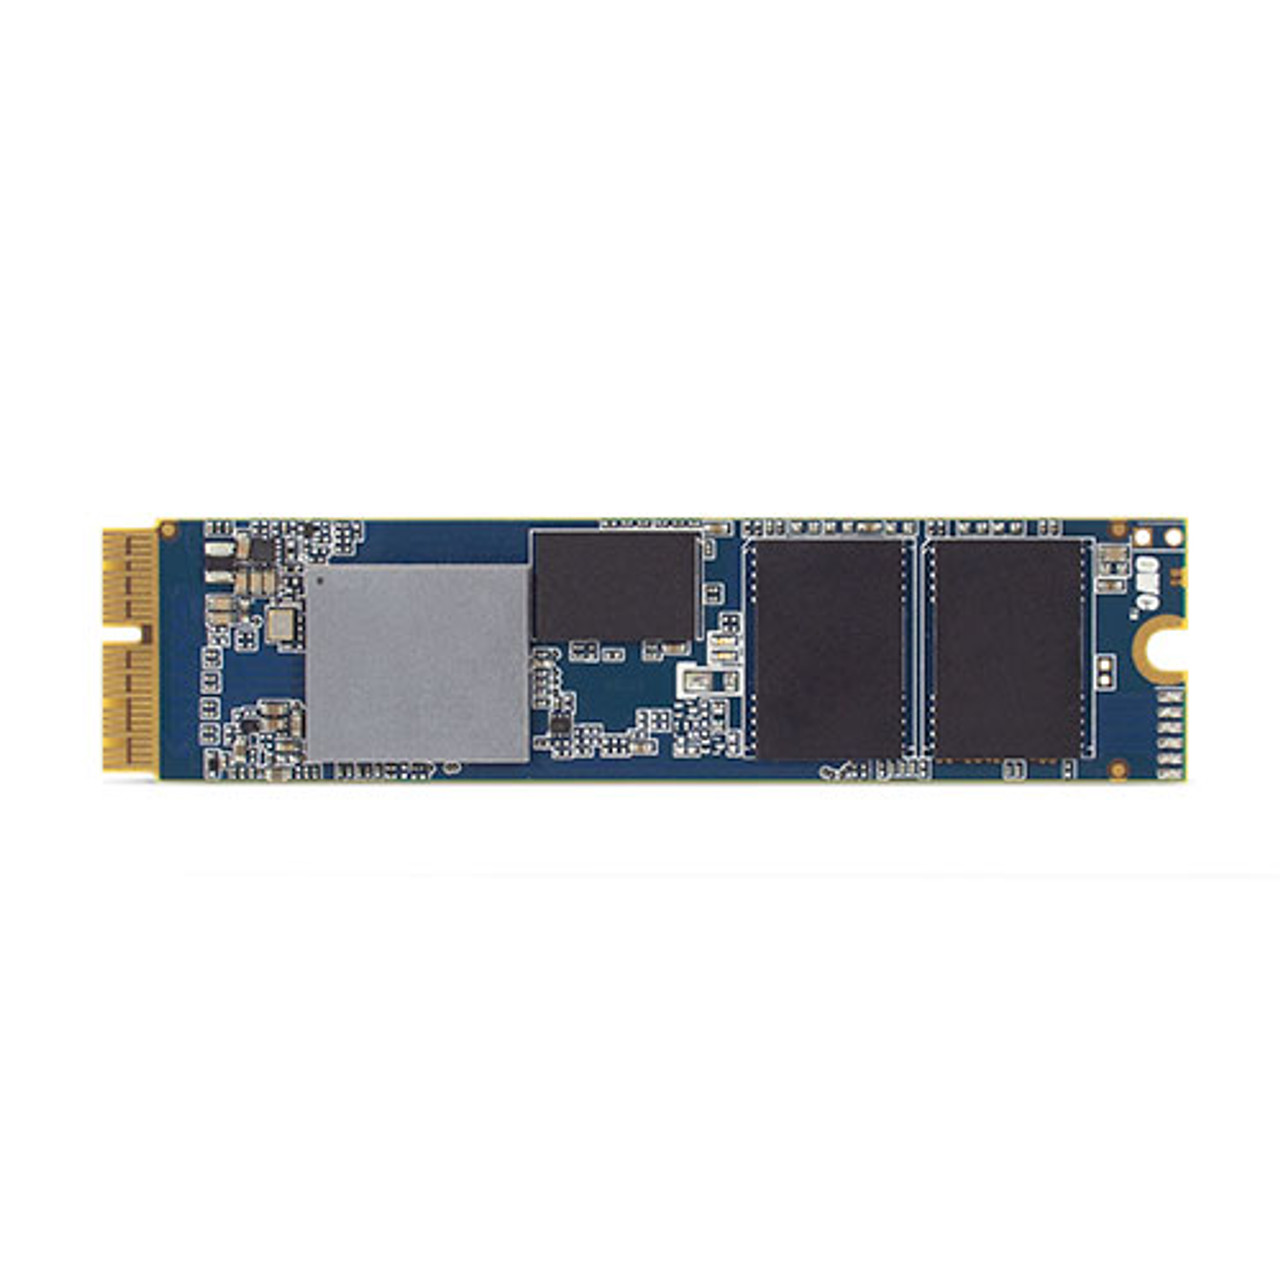 OWC 480GB Aura Pro X2 SSD upgrade with tools and Envoy SSD enclosure (for MacBook Pro w/ Retina Display Late 2013 - Mid 2015 and MacBook Air Mid 2013 - Mid 2017)